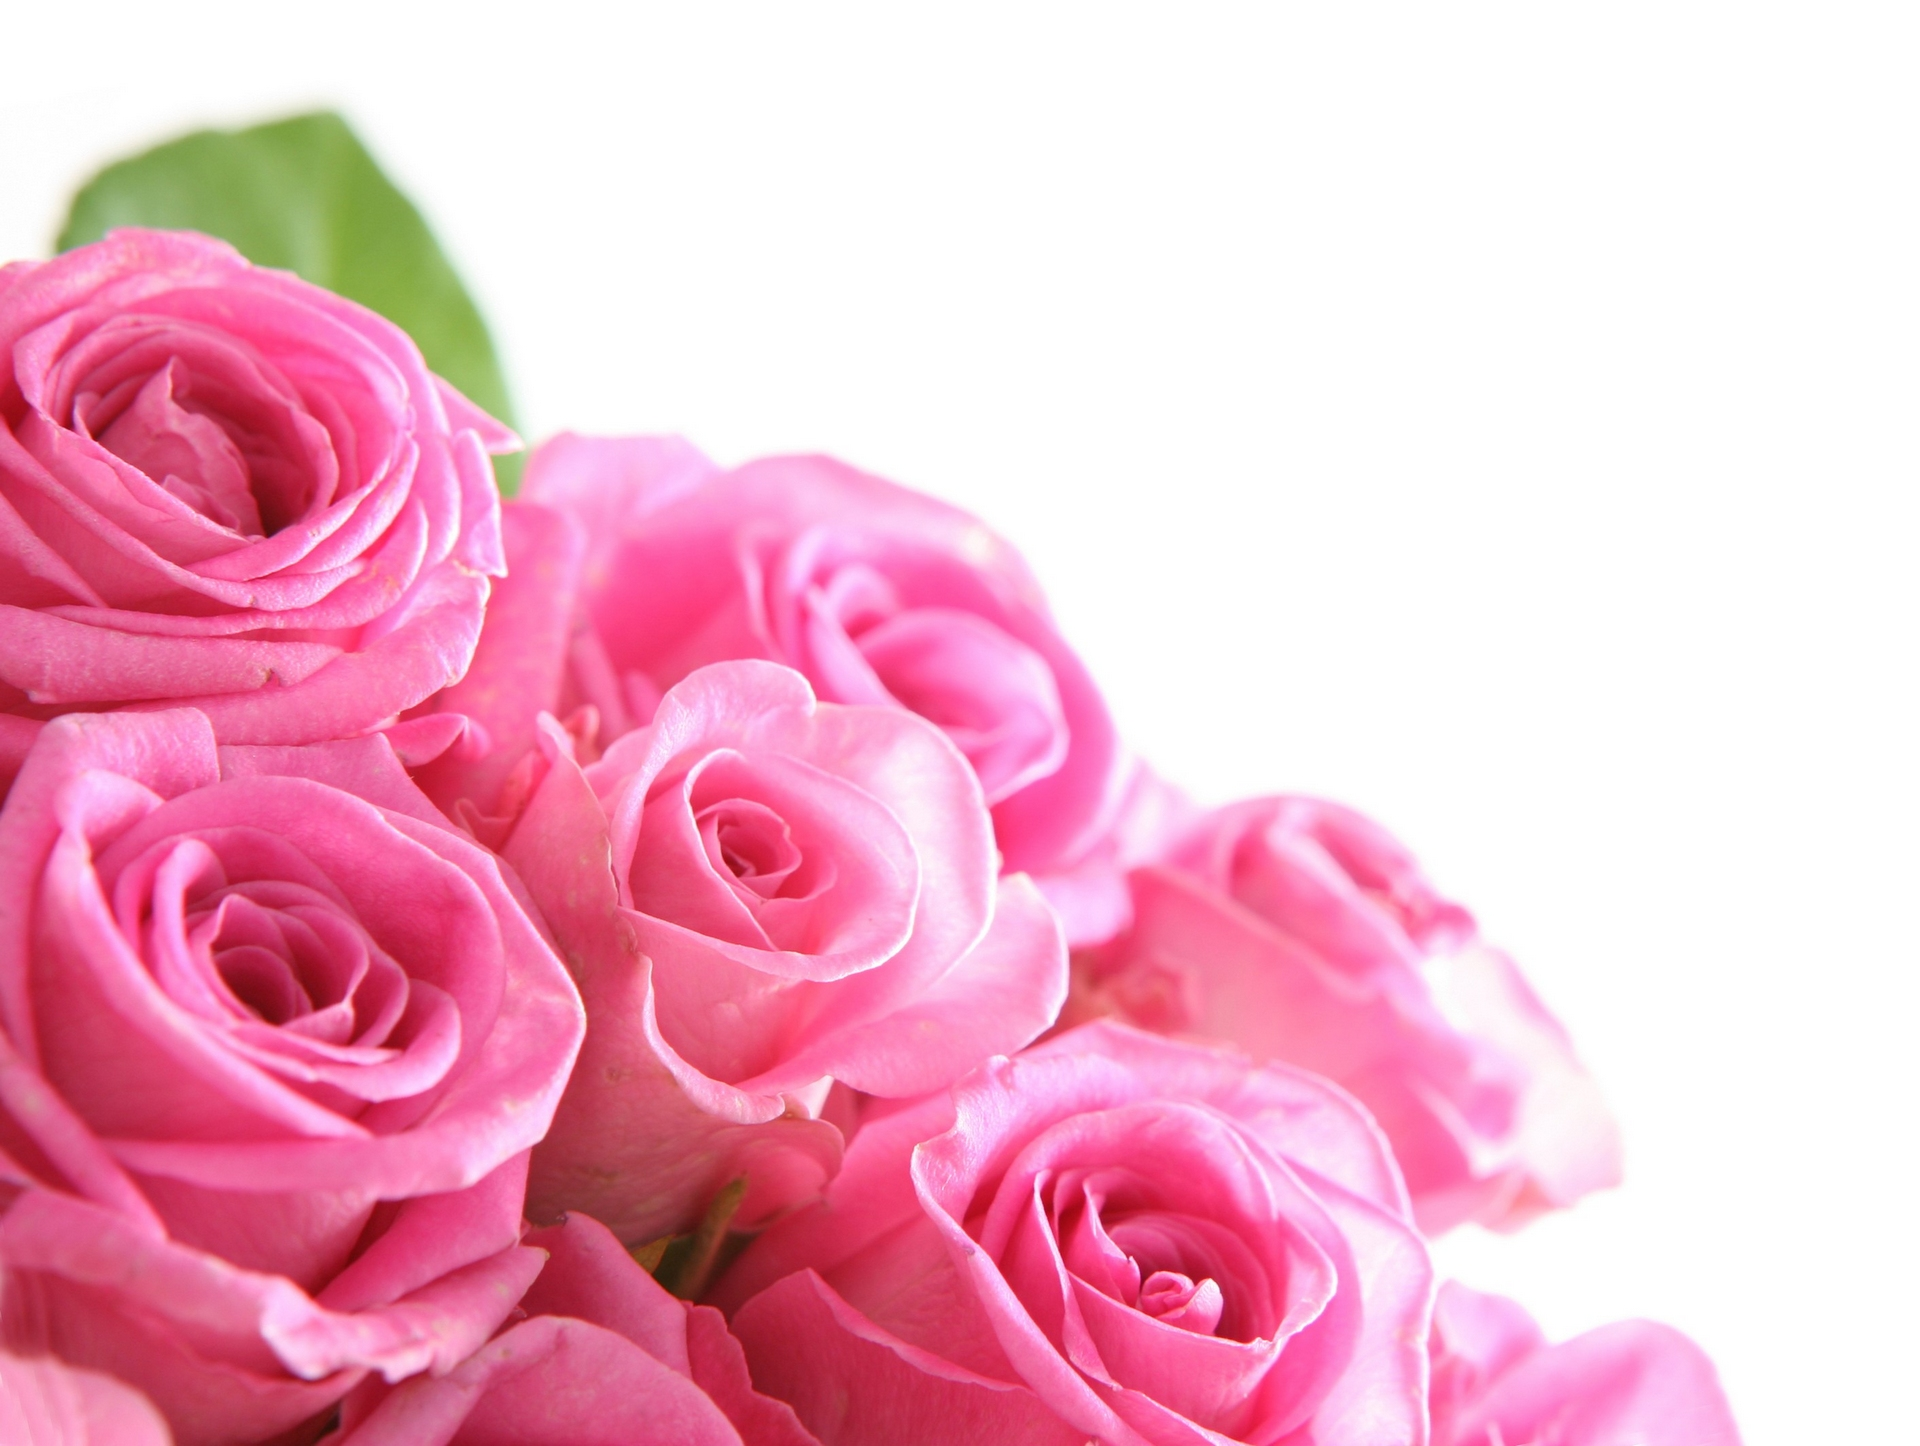 Pink color images pink roses hd wallpaper and background photos pink color images pink roses hd wallpaper and background photos mightylinksfo